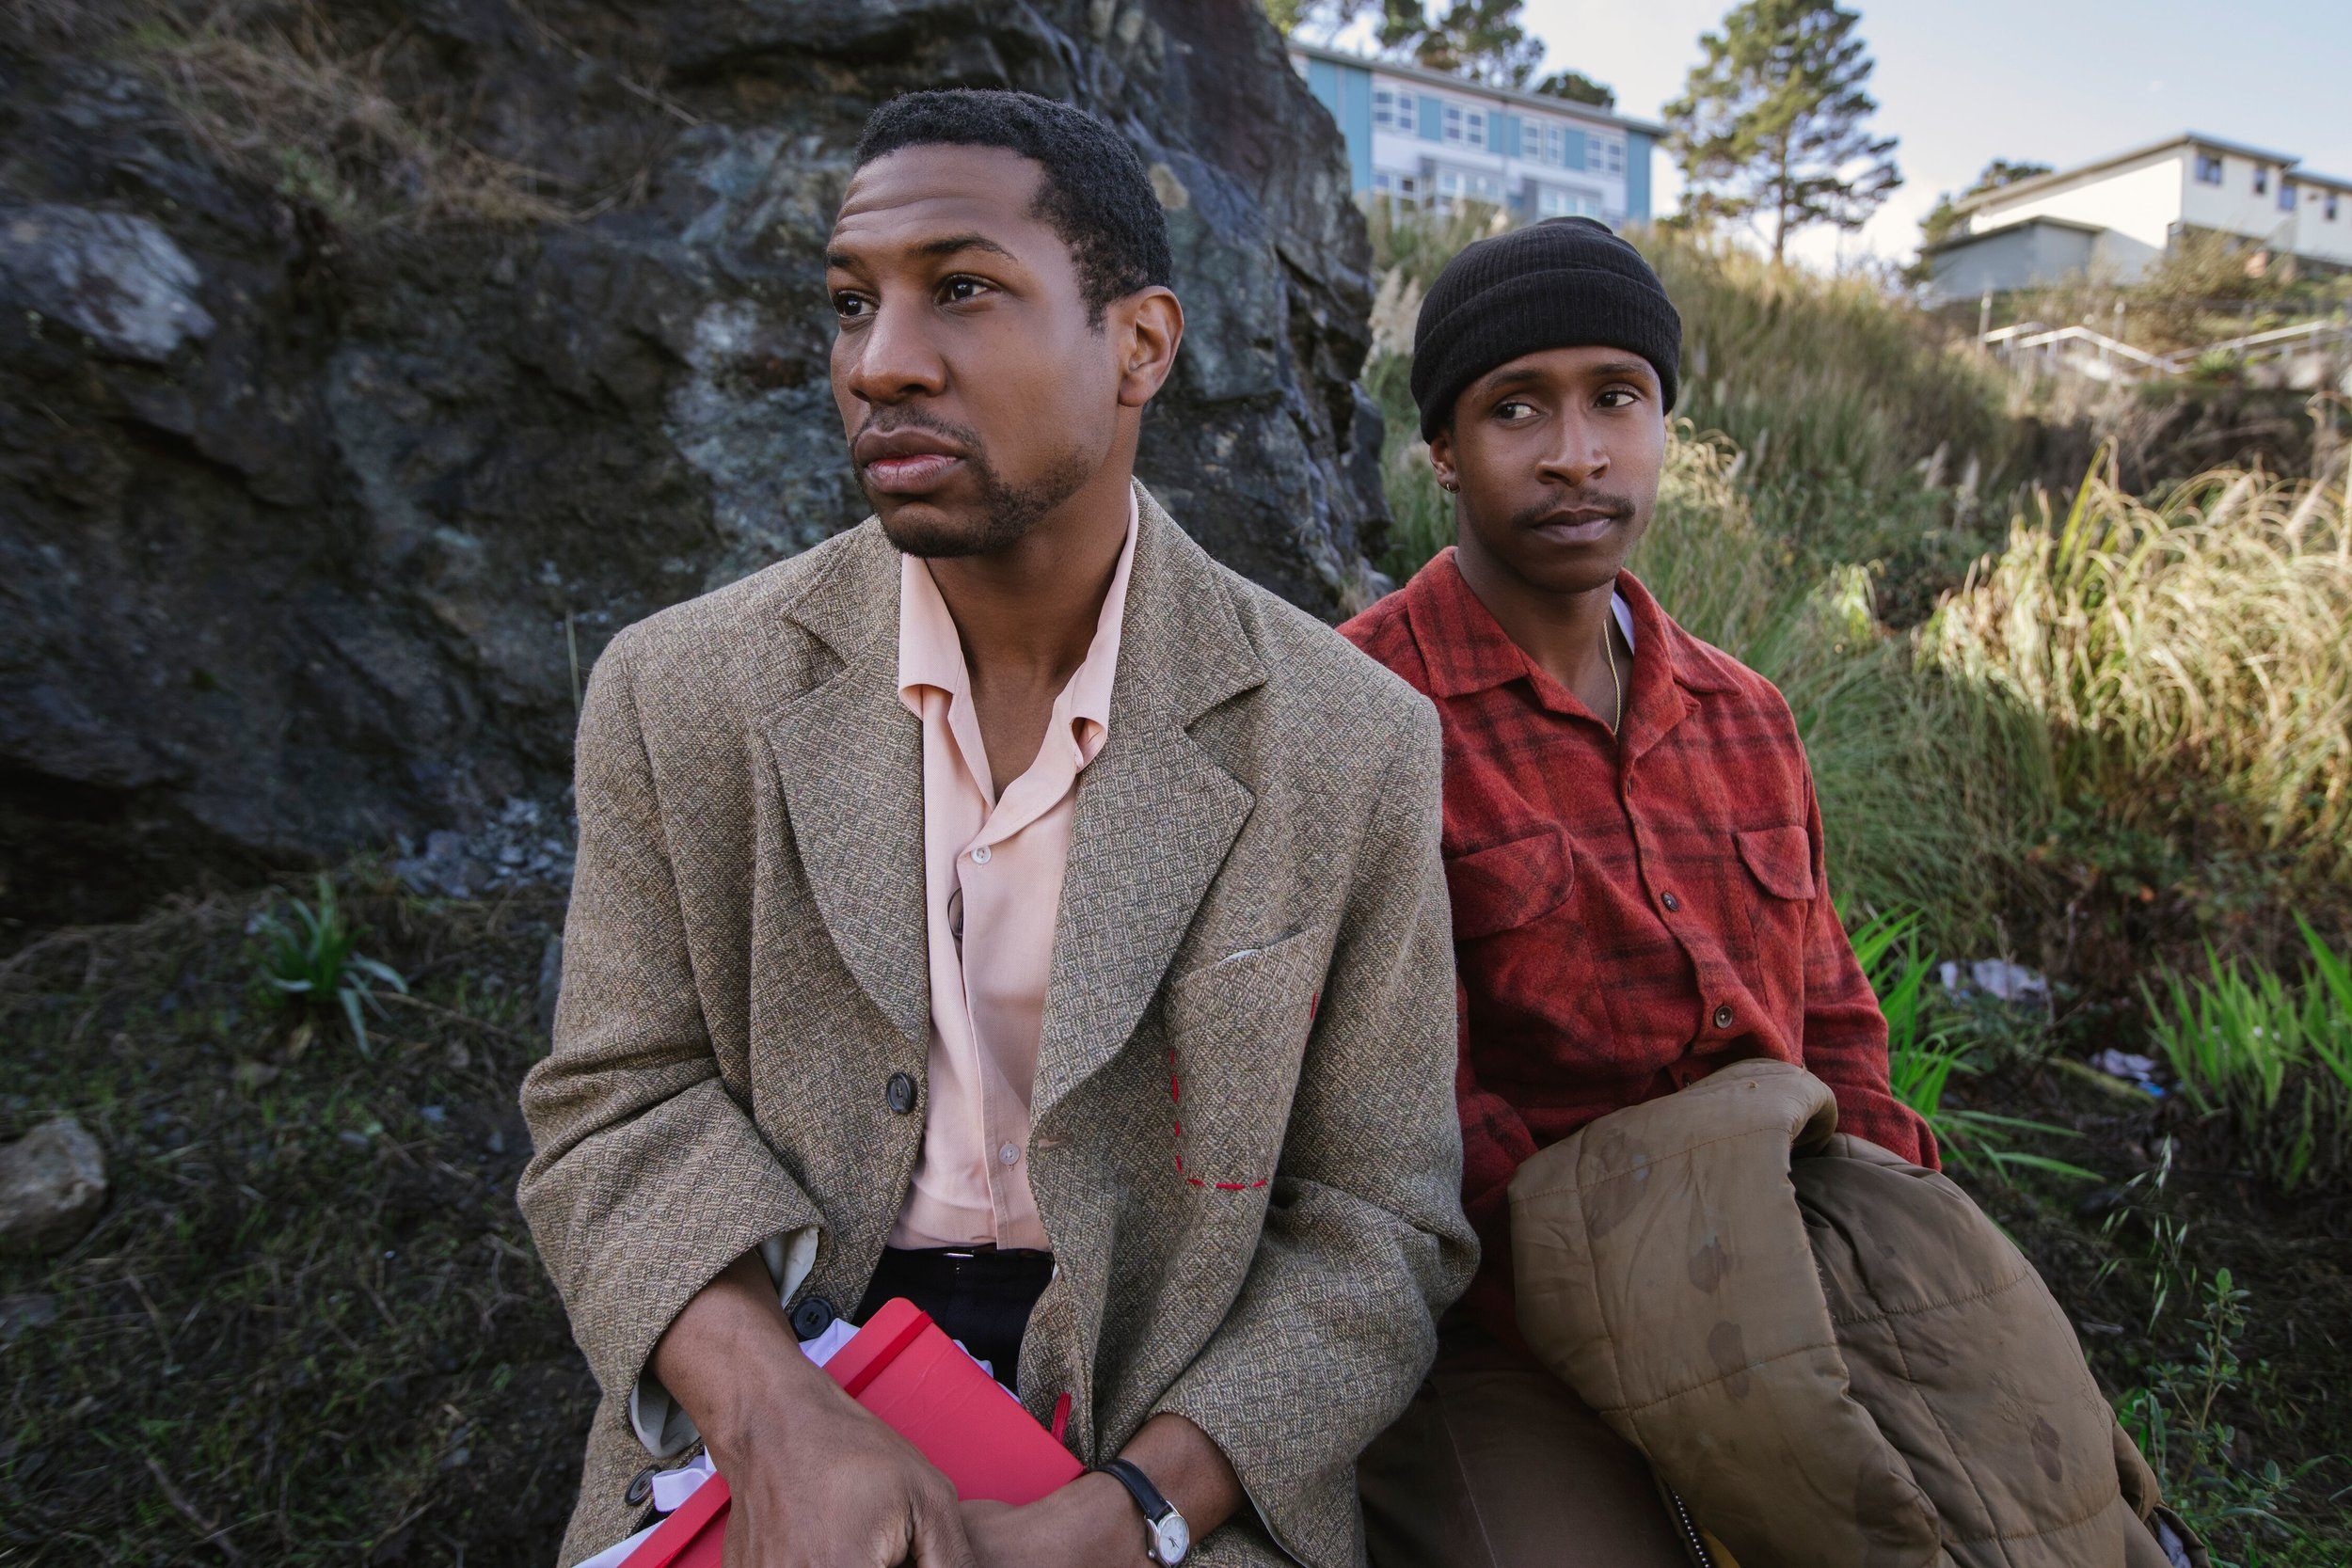 Mont and Jimmie (Jonathan Majors and Jimmie Fails) ponder their future in a priced-out San Francisco